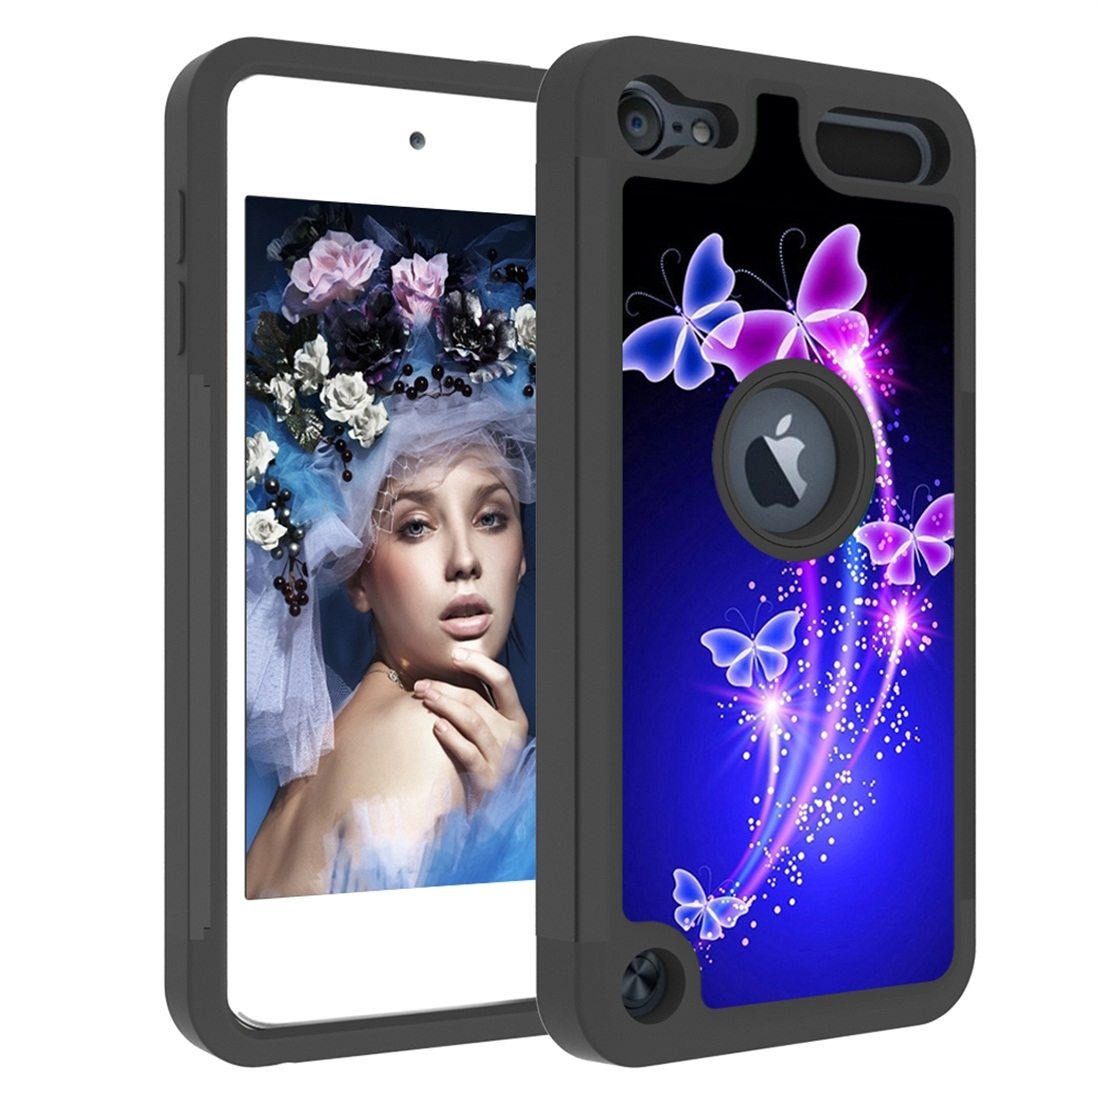 Colorful  Design PC/Protective Durable Casing for iPod touch 5/ 6/ 7 (2019) (Dancing Butterflies)